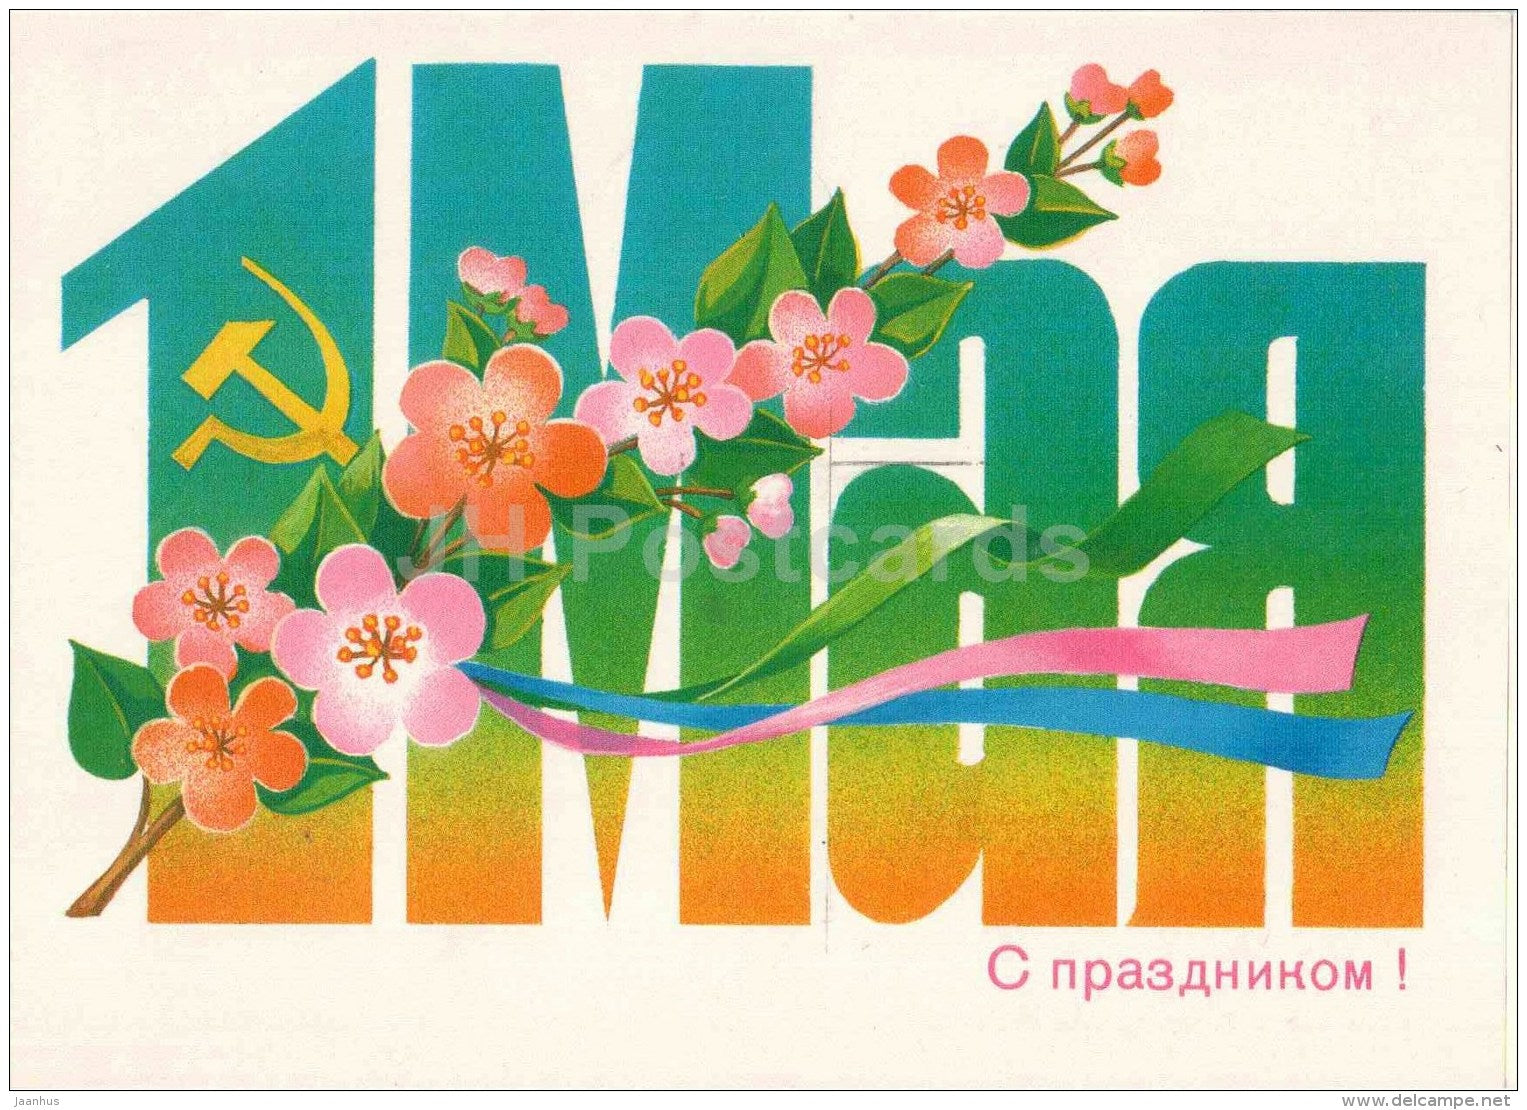 May 1 International Workers' Day greeting card - flowers - hammer and sickle - 1985 - Russia USSR - unused - JH Postcards